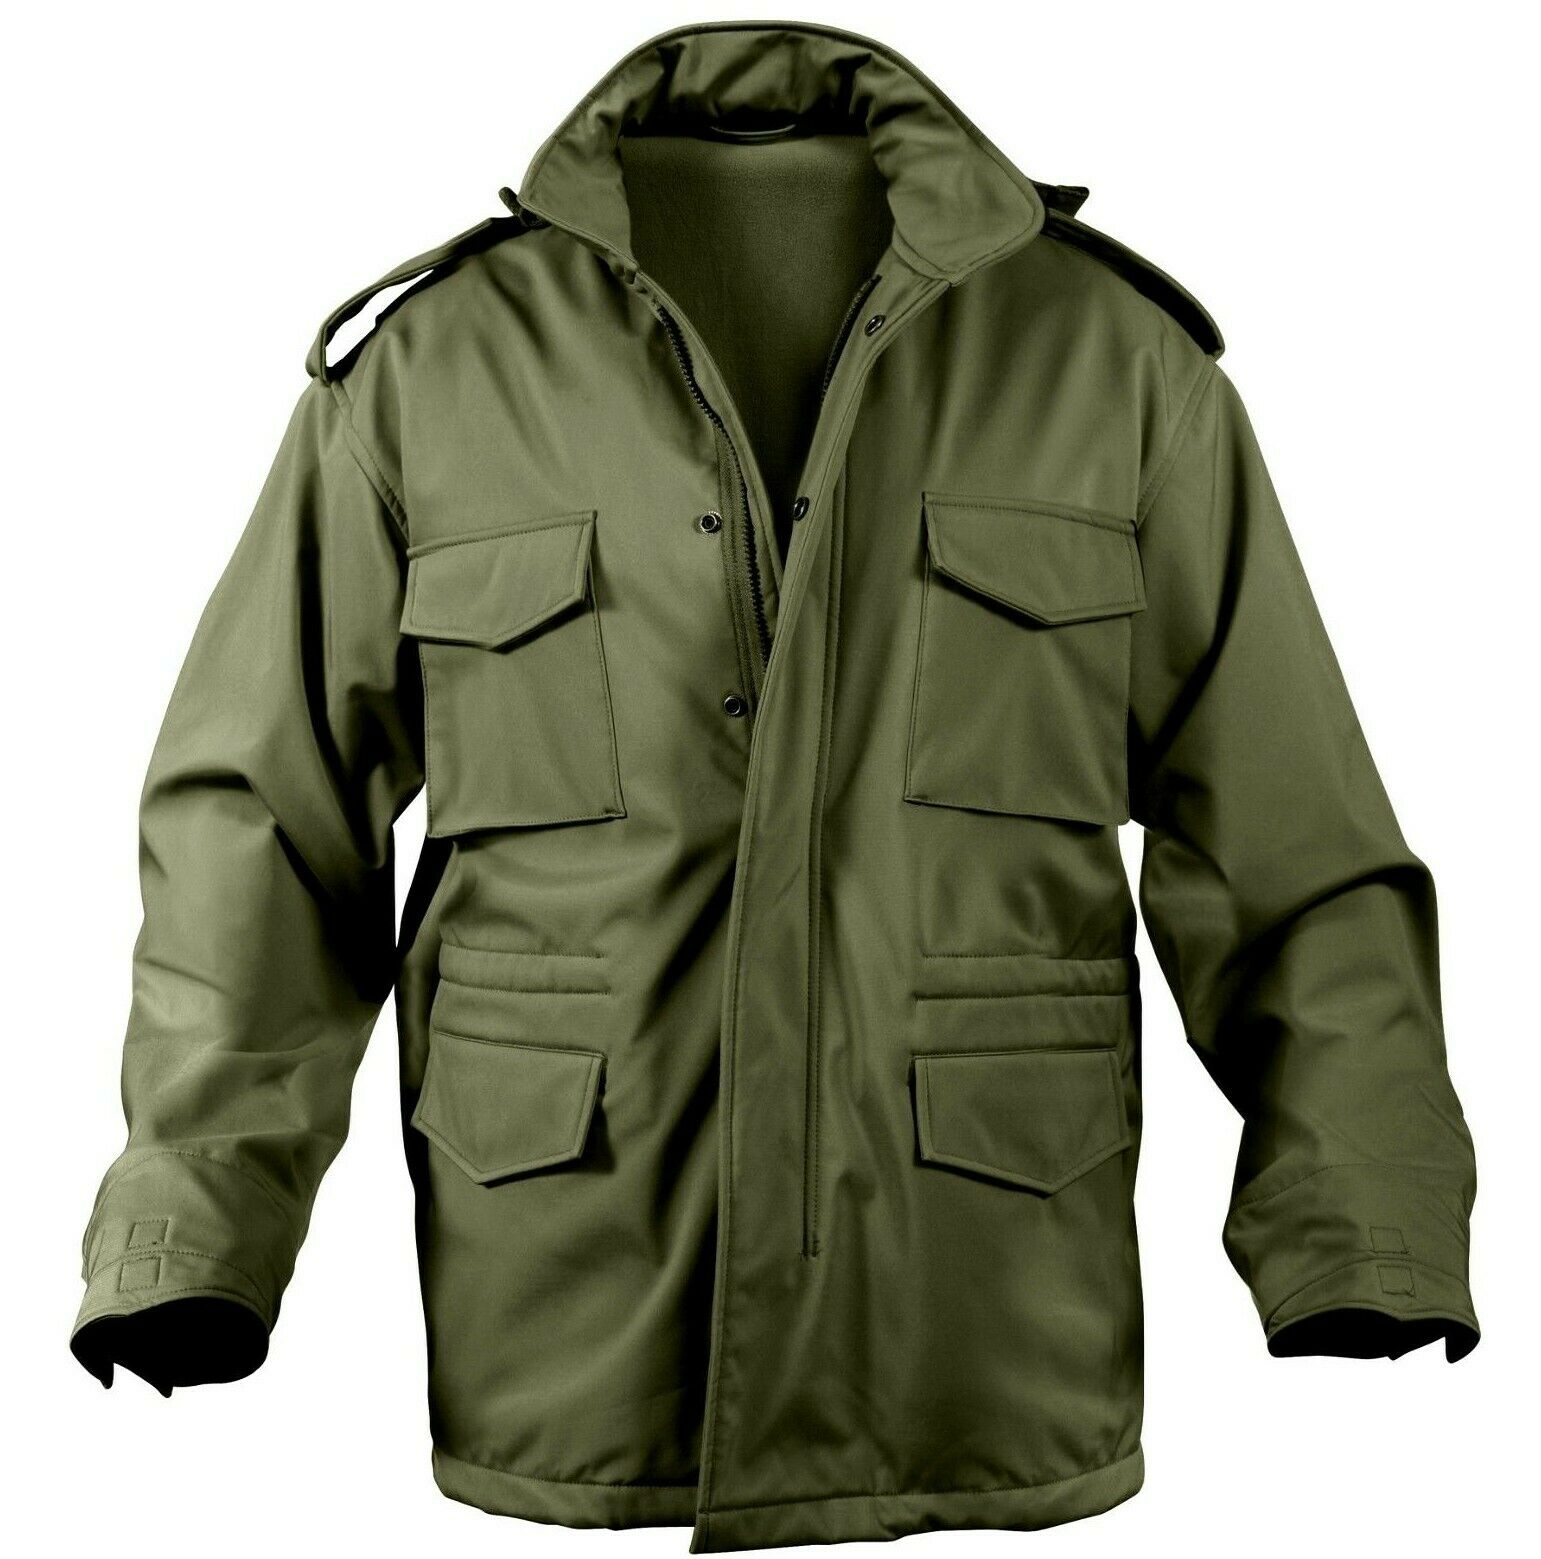 Military Style Soft Shell Tactical M-65 Field jacke Olive Drab Coat Rothco 5744